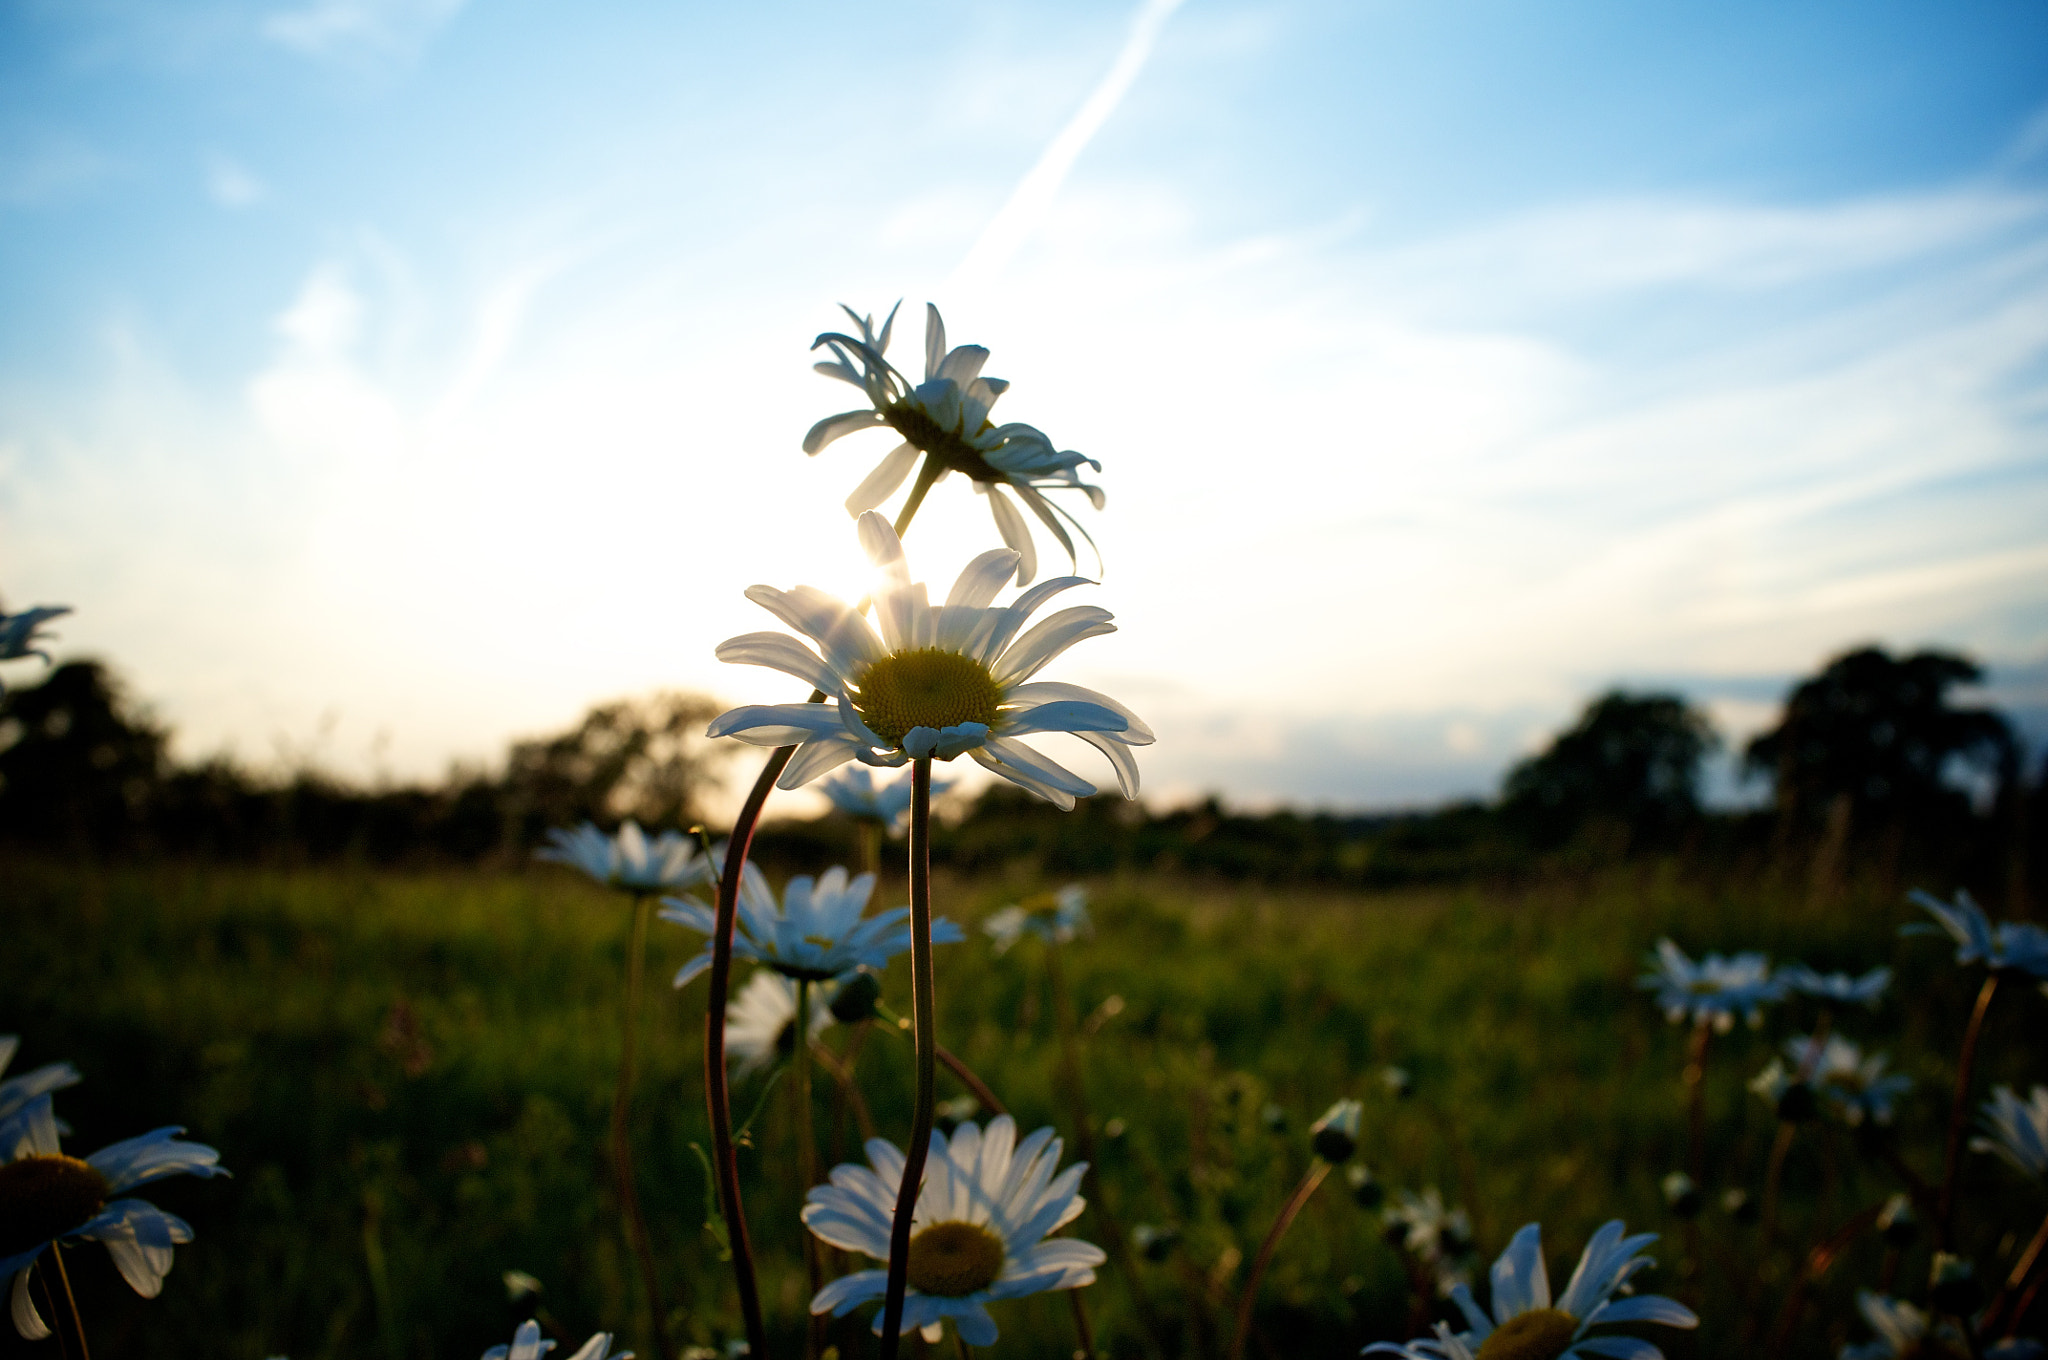 Photograph Flowers in a field  by Gavin Nugent on 500px